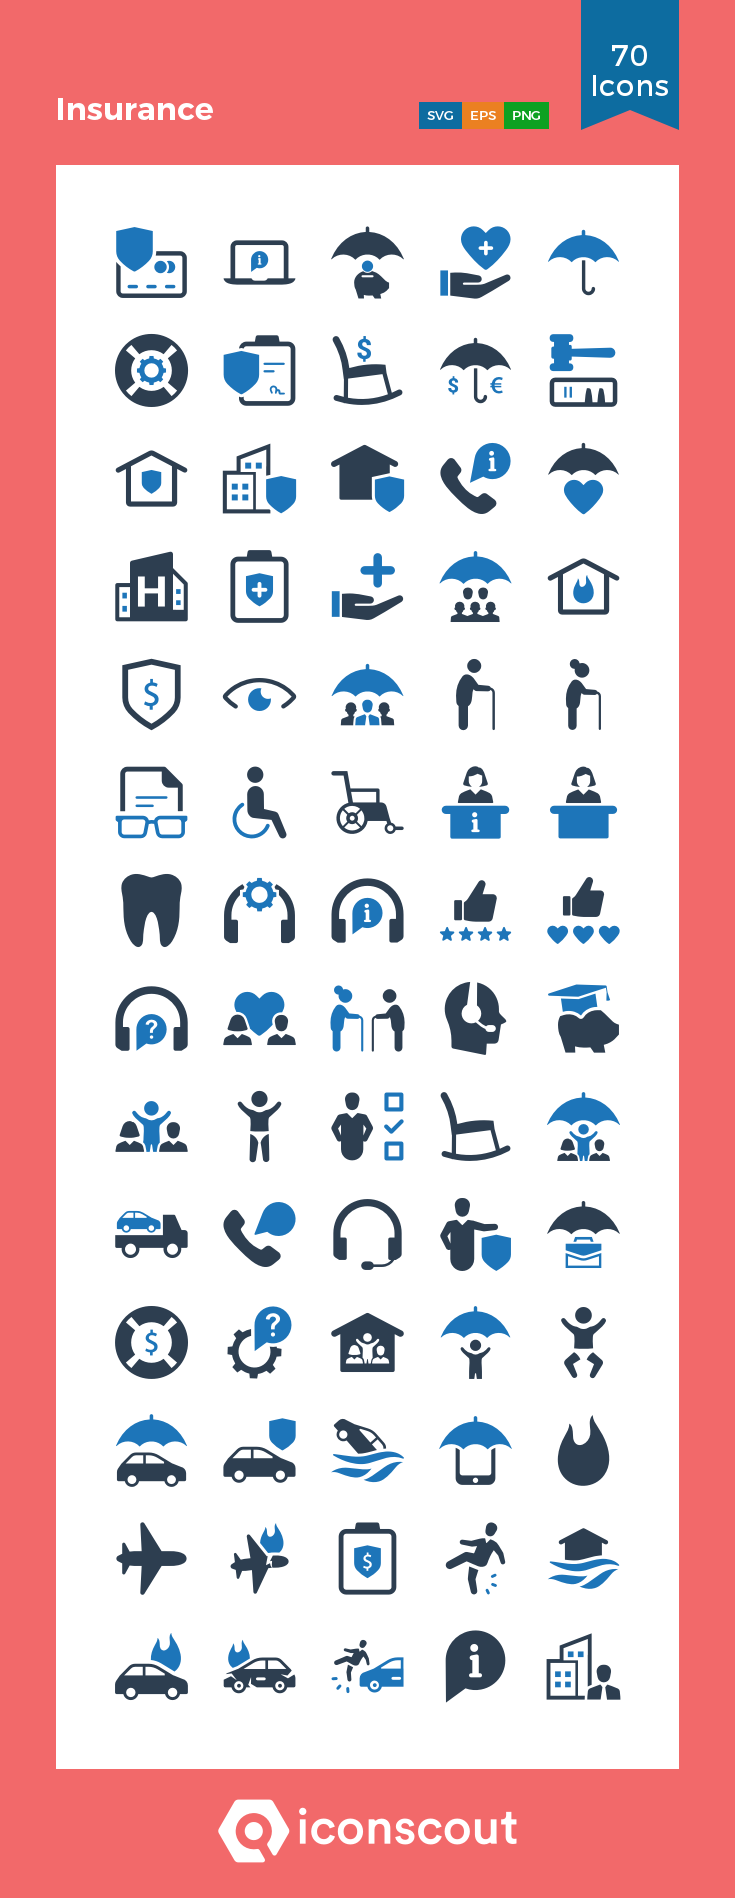 Download Insurance Icon Pack Available In Svg Png Eps Ai Icon Fonts Icon Pack Job Security Icon